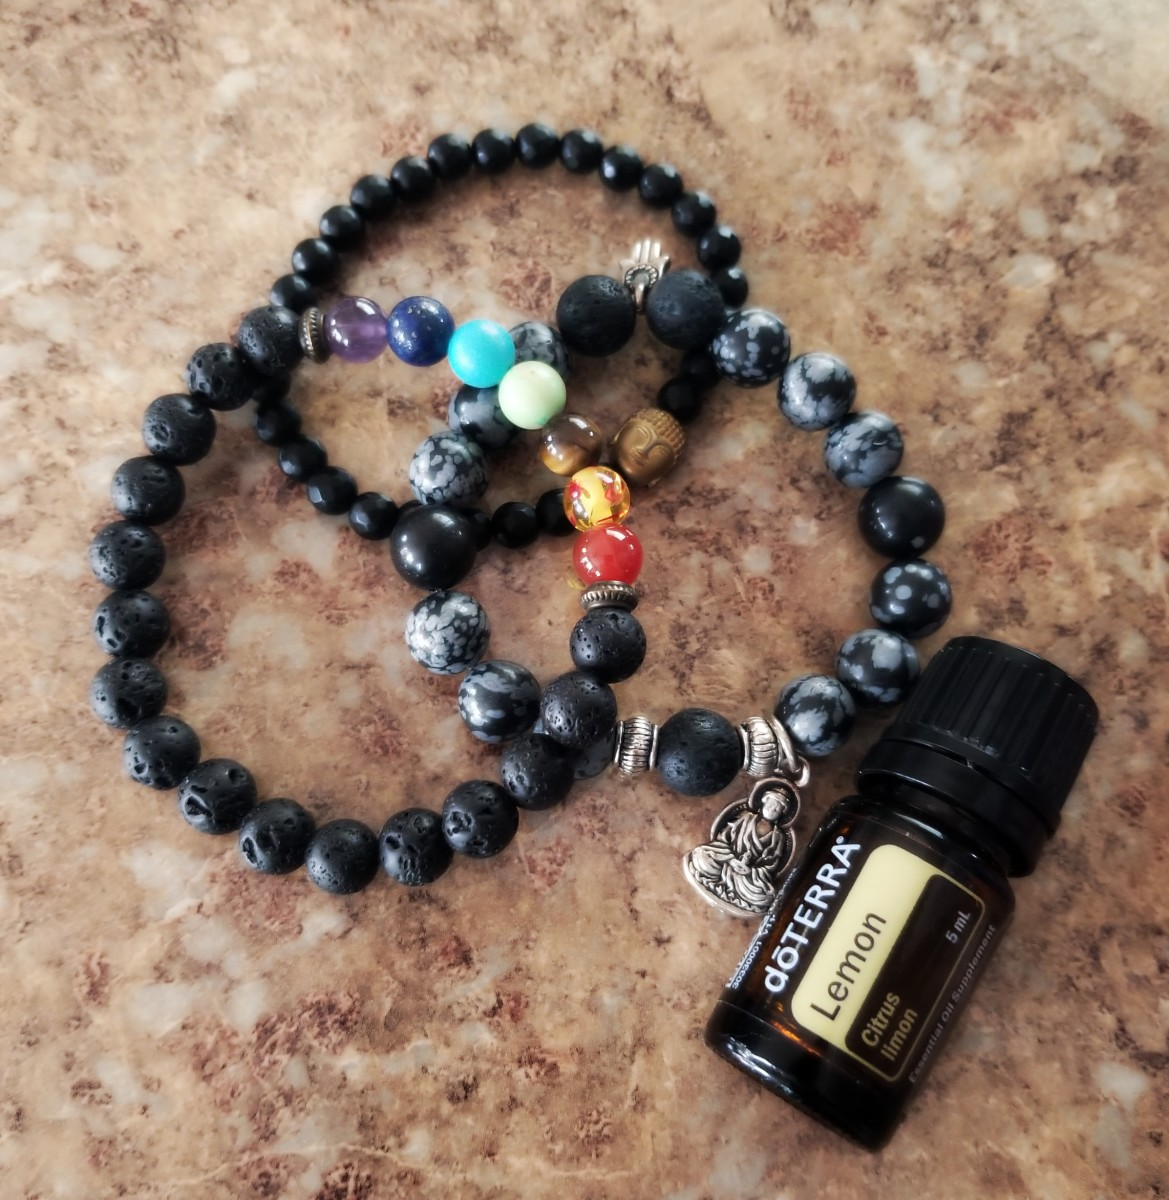 Lemon essential oil and a diffuser bracelet are an uplifting combination.